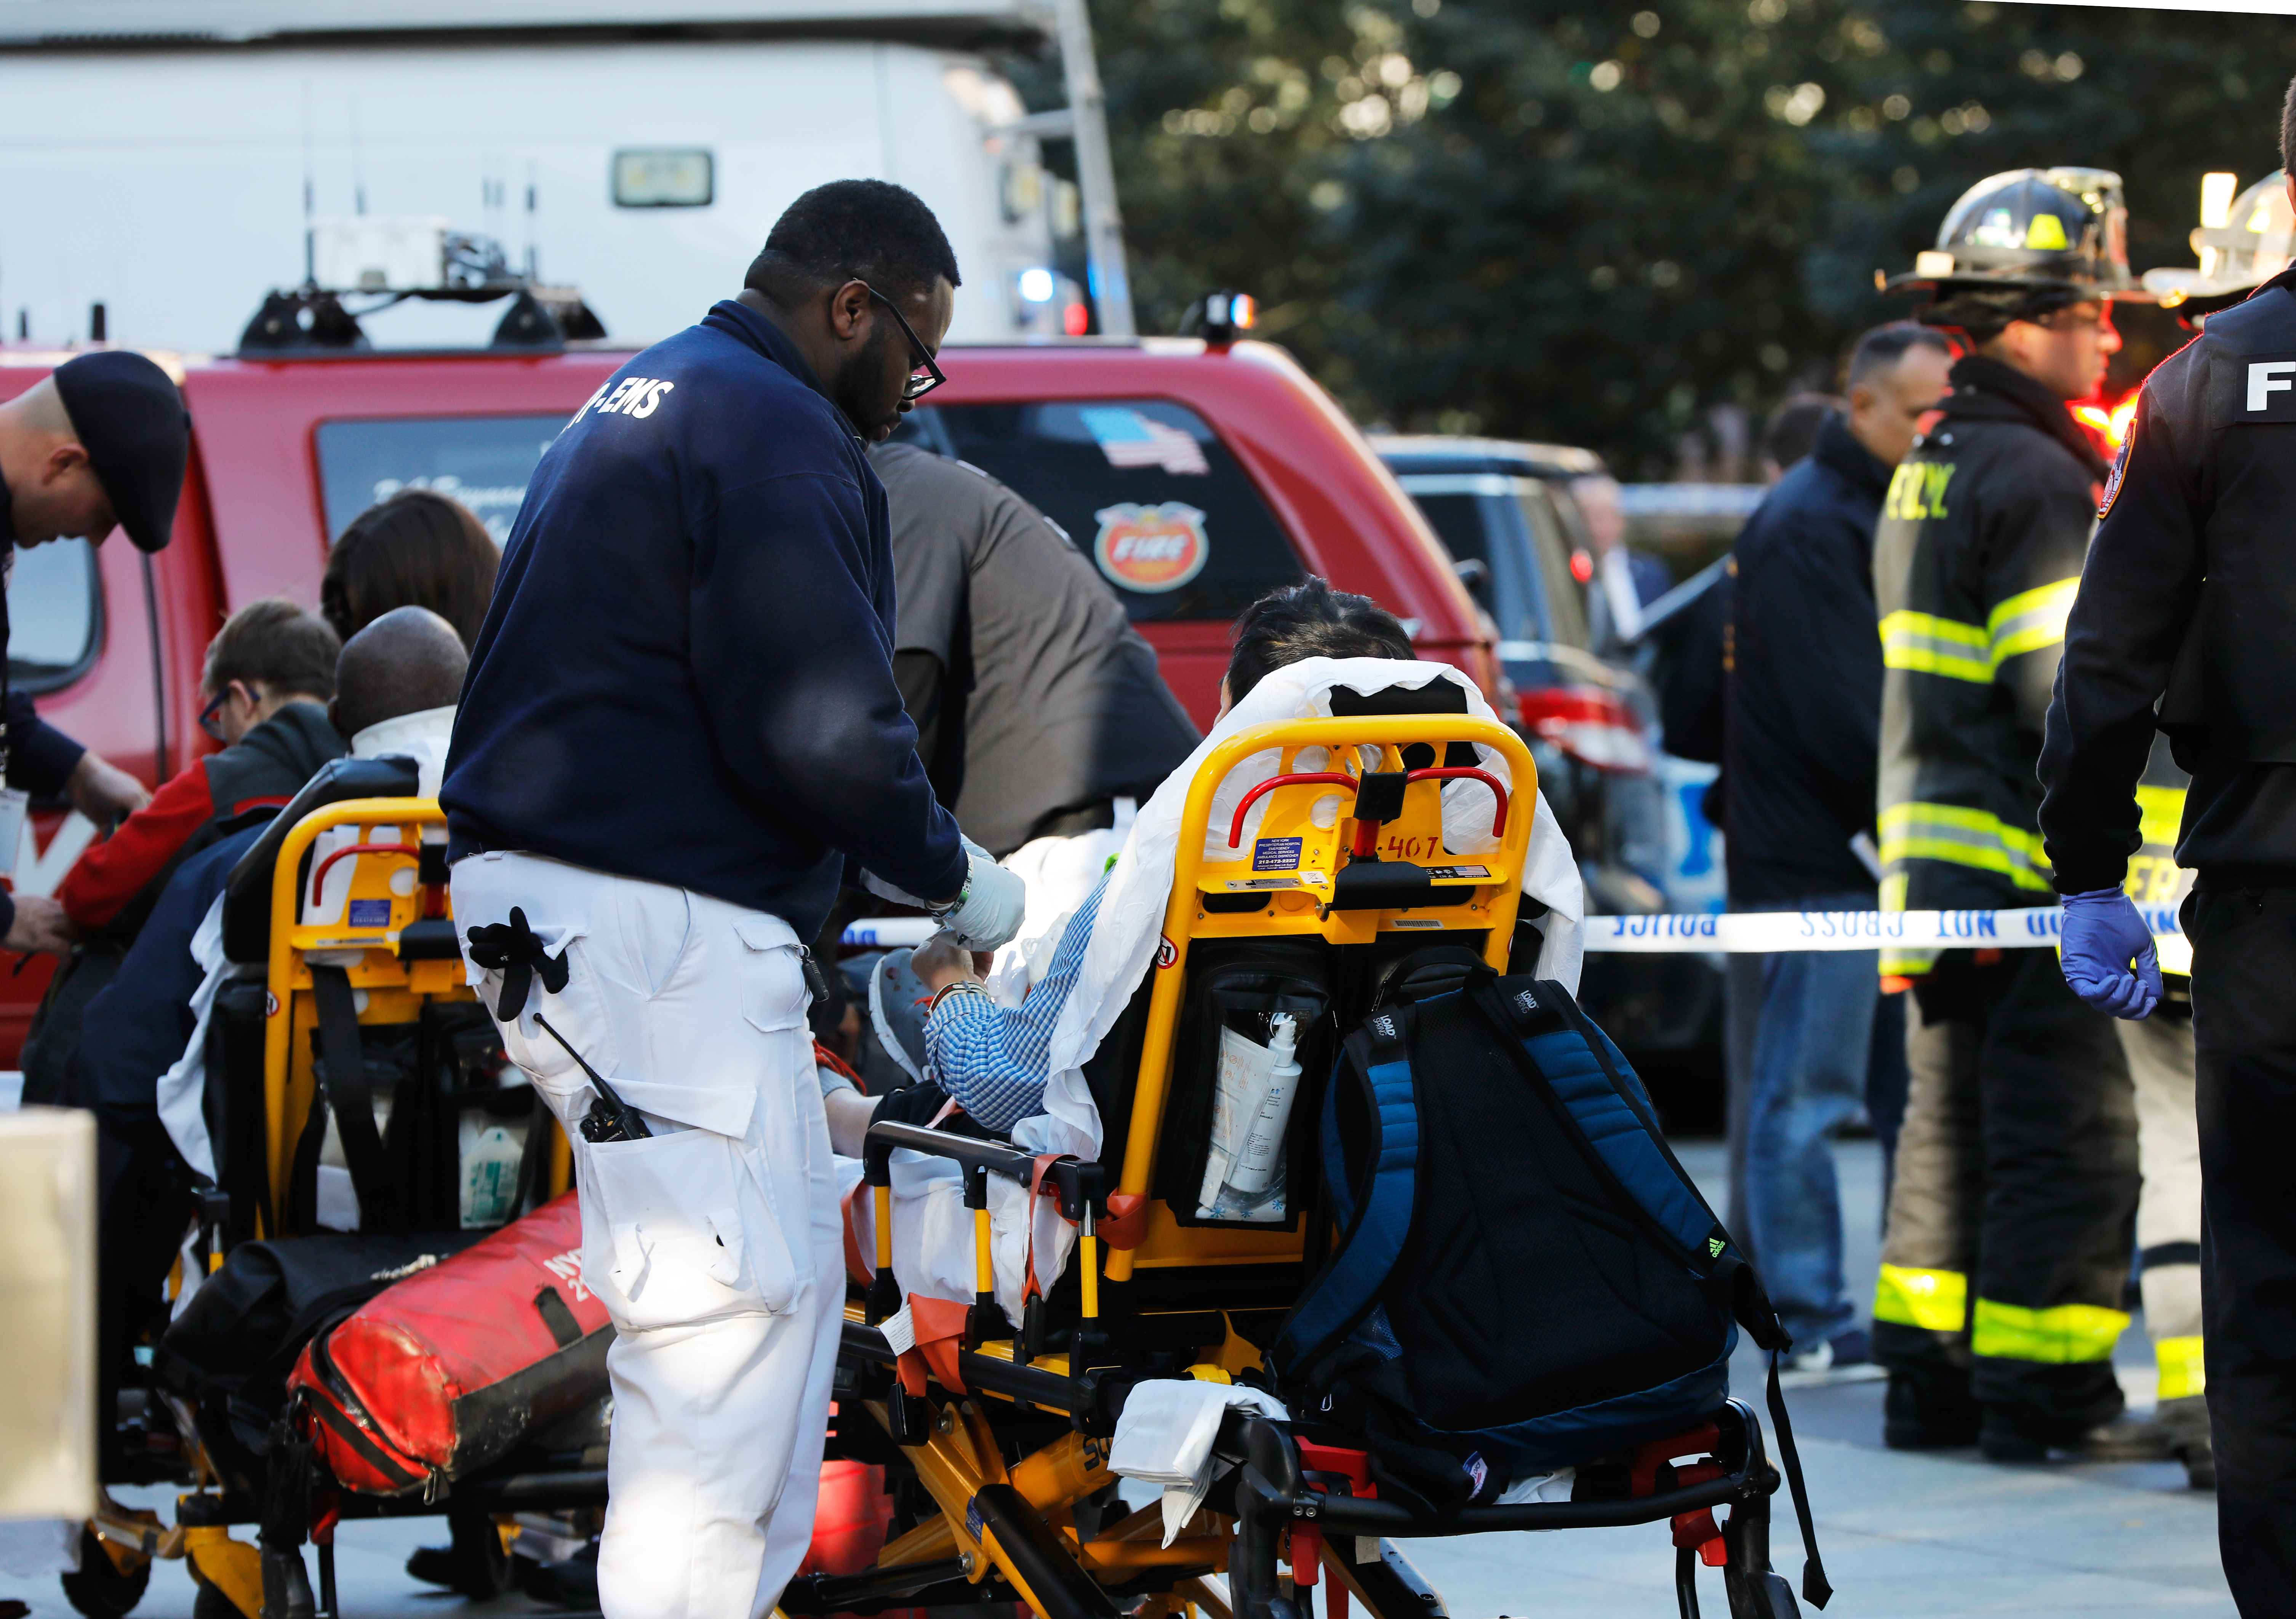 First responders tend to a victim after a shooting incident in New York City